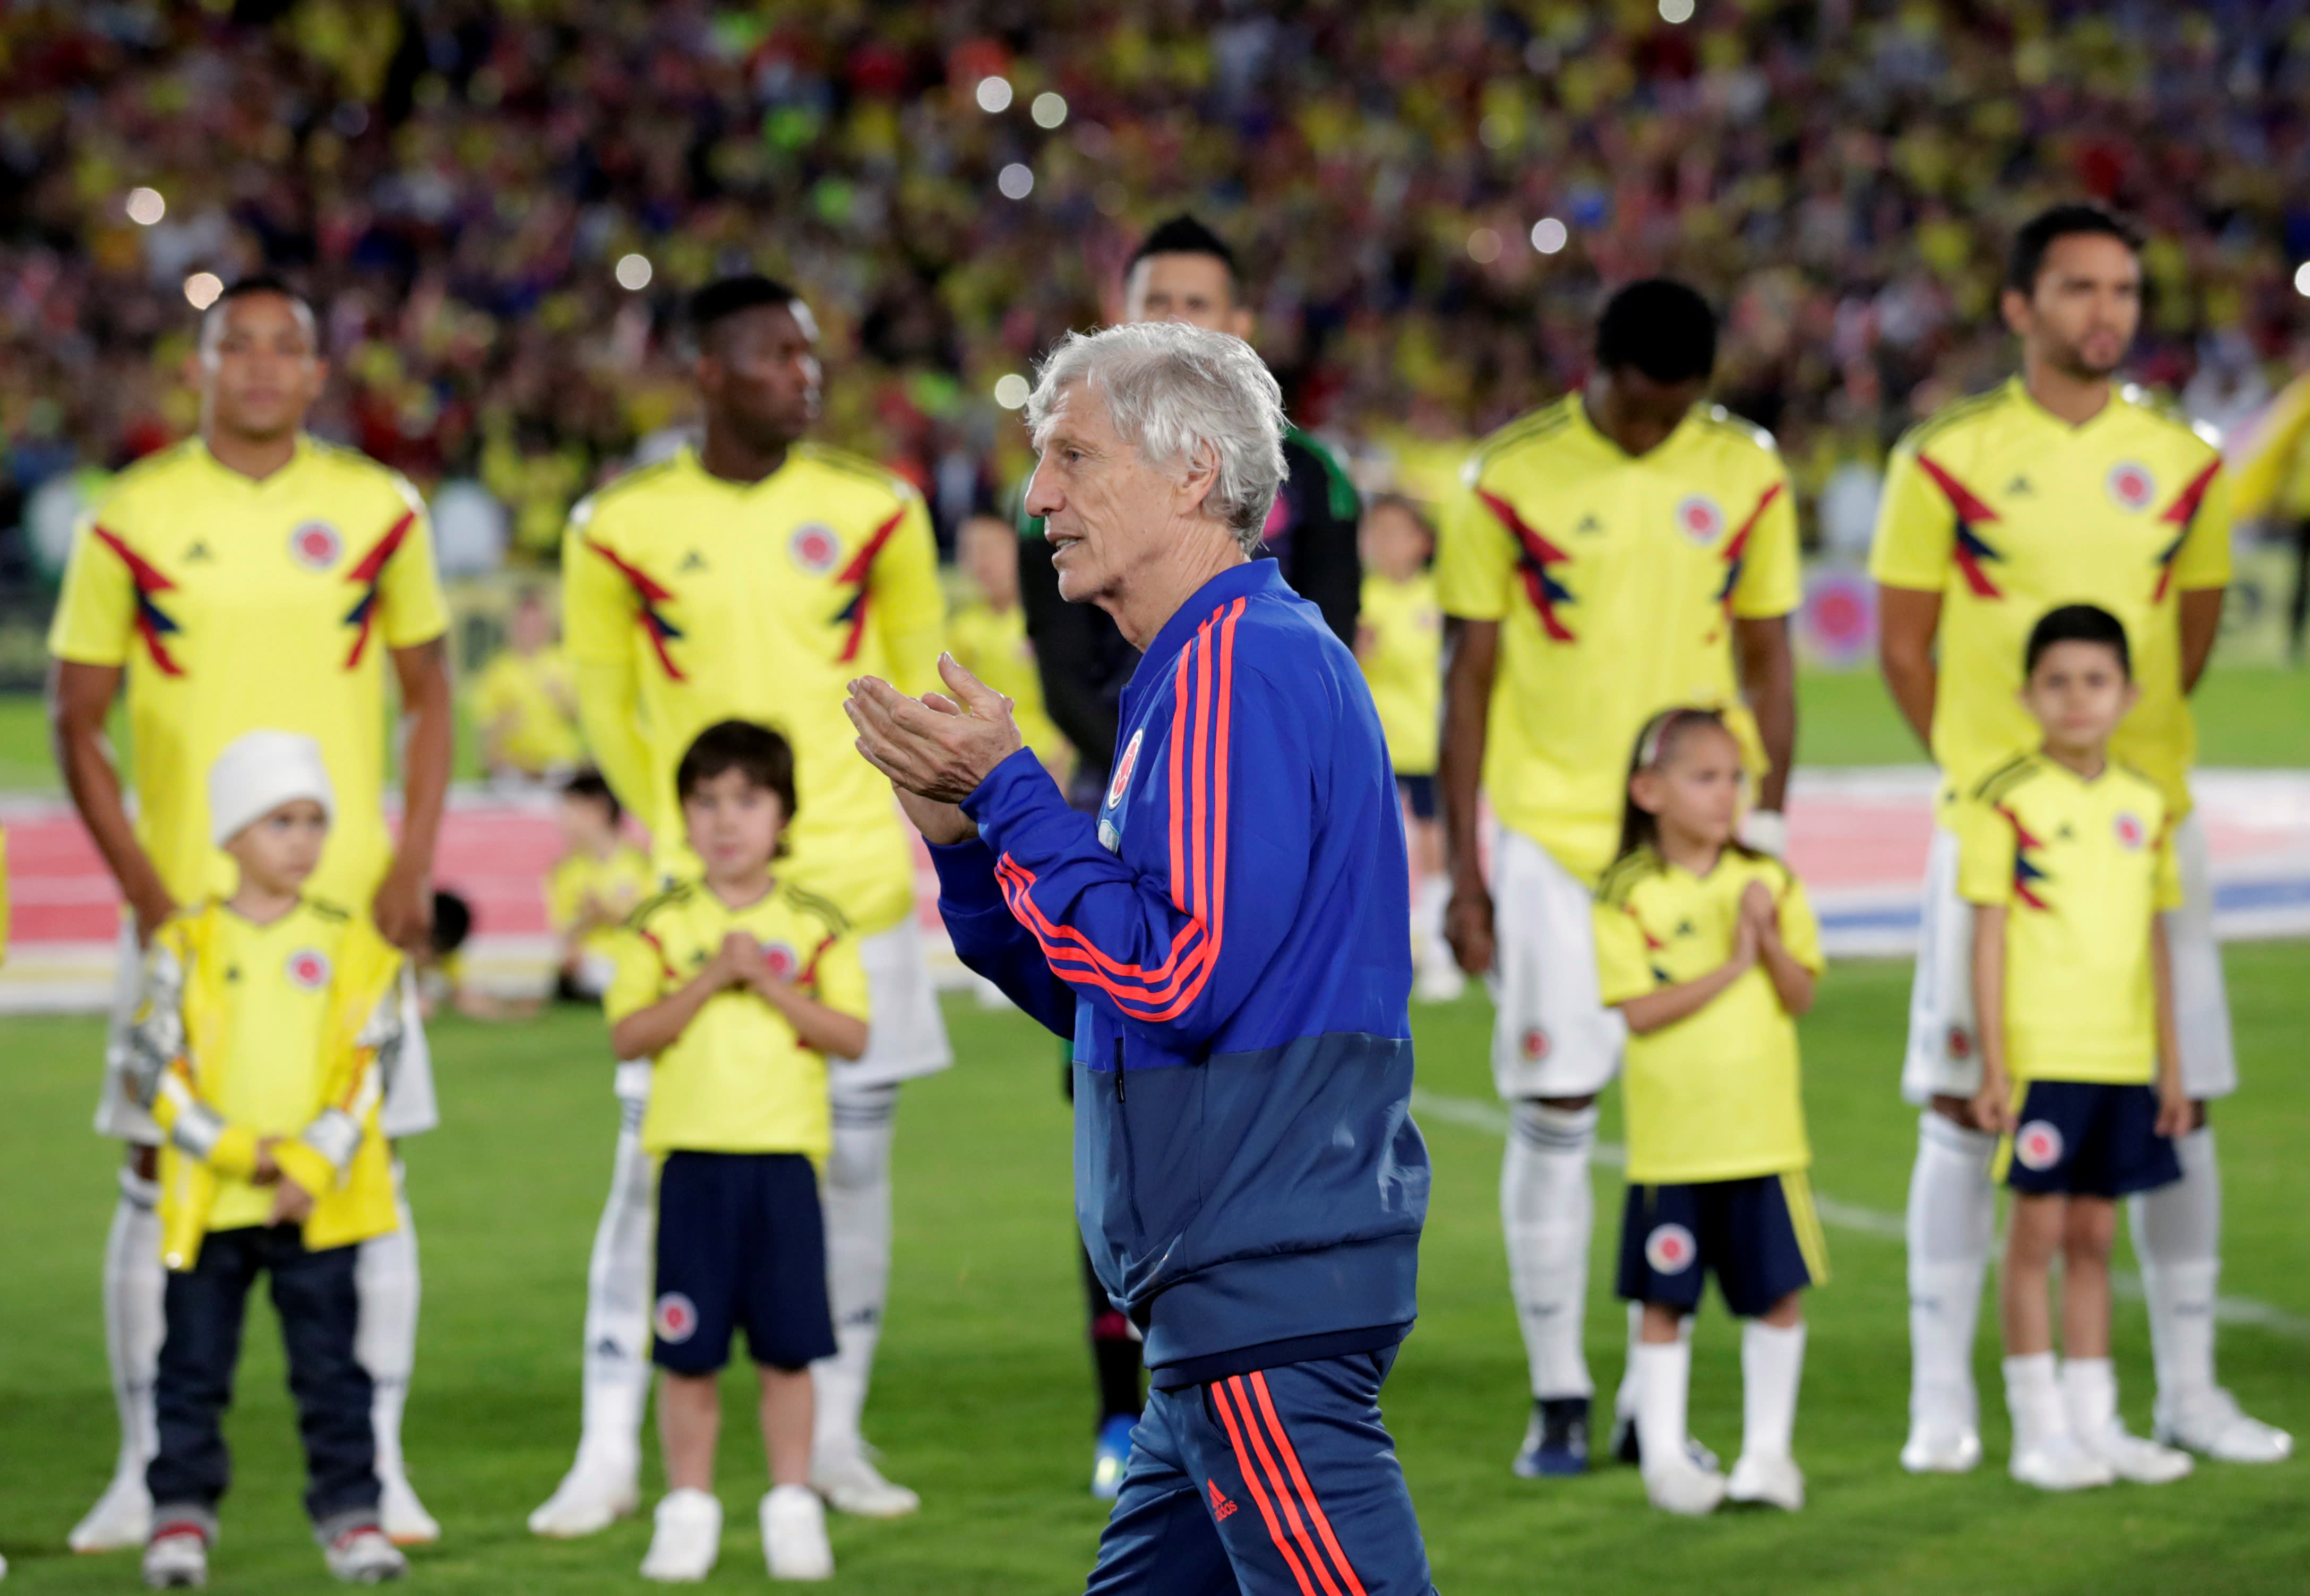 Colombia's national soccer coach Jose Pekerman ahead of the upcoming FIFA World Cup Russia 2018 (REUTERS/HENRY ROMERO)